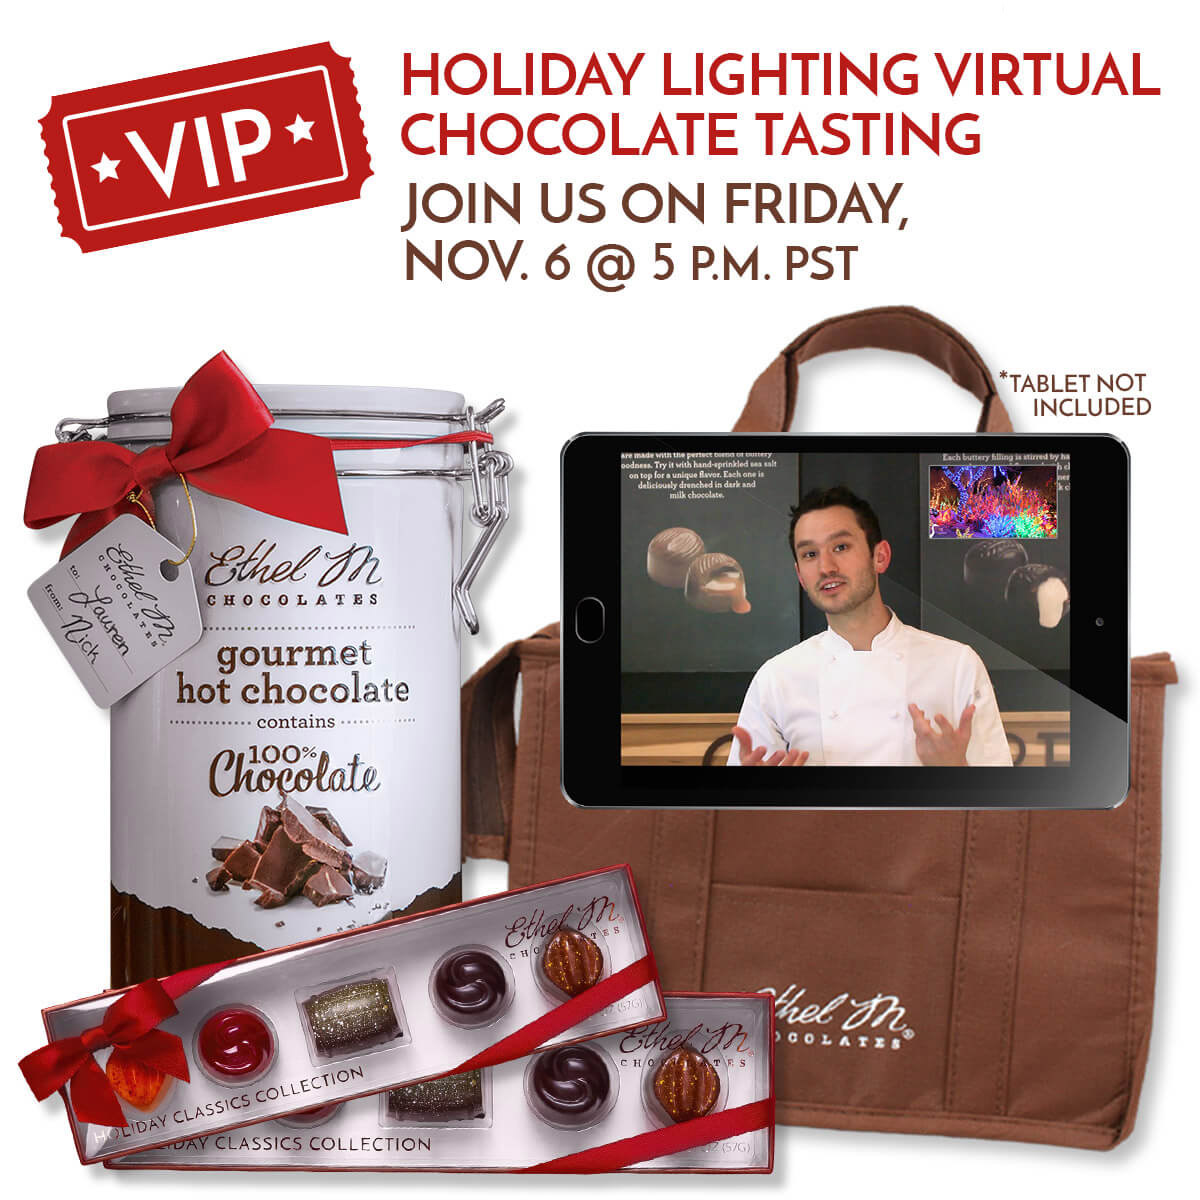 Holiday Lighting Virtual Tasting on November 6 at 5pm pst